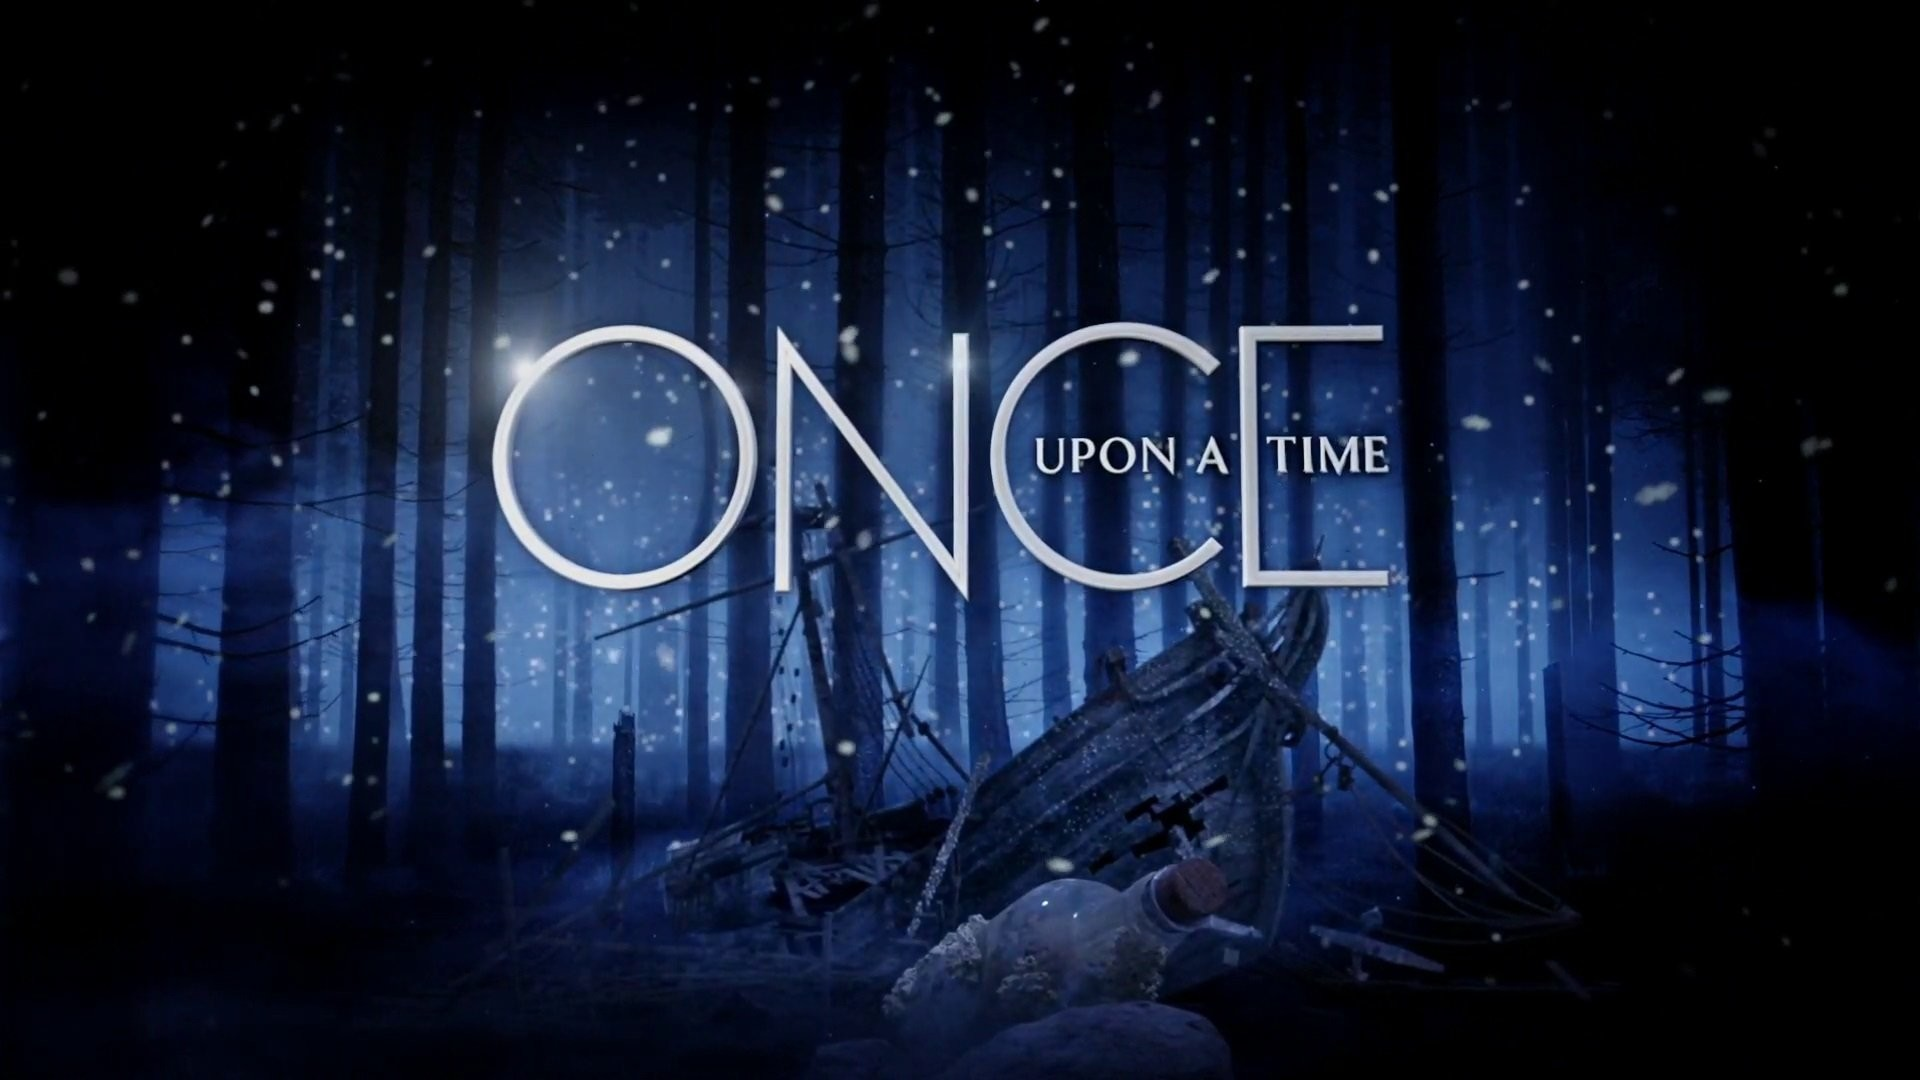 ONCE-UPON-A-TIME fantasy drama mystery once upon time adventure series  disney poster wallpaper | | 803048 | WallpaperUP